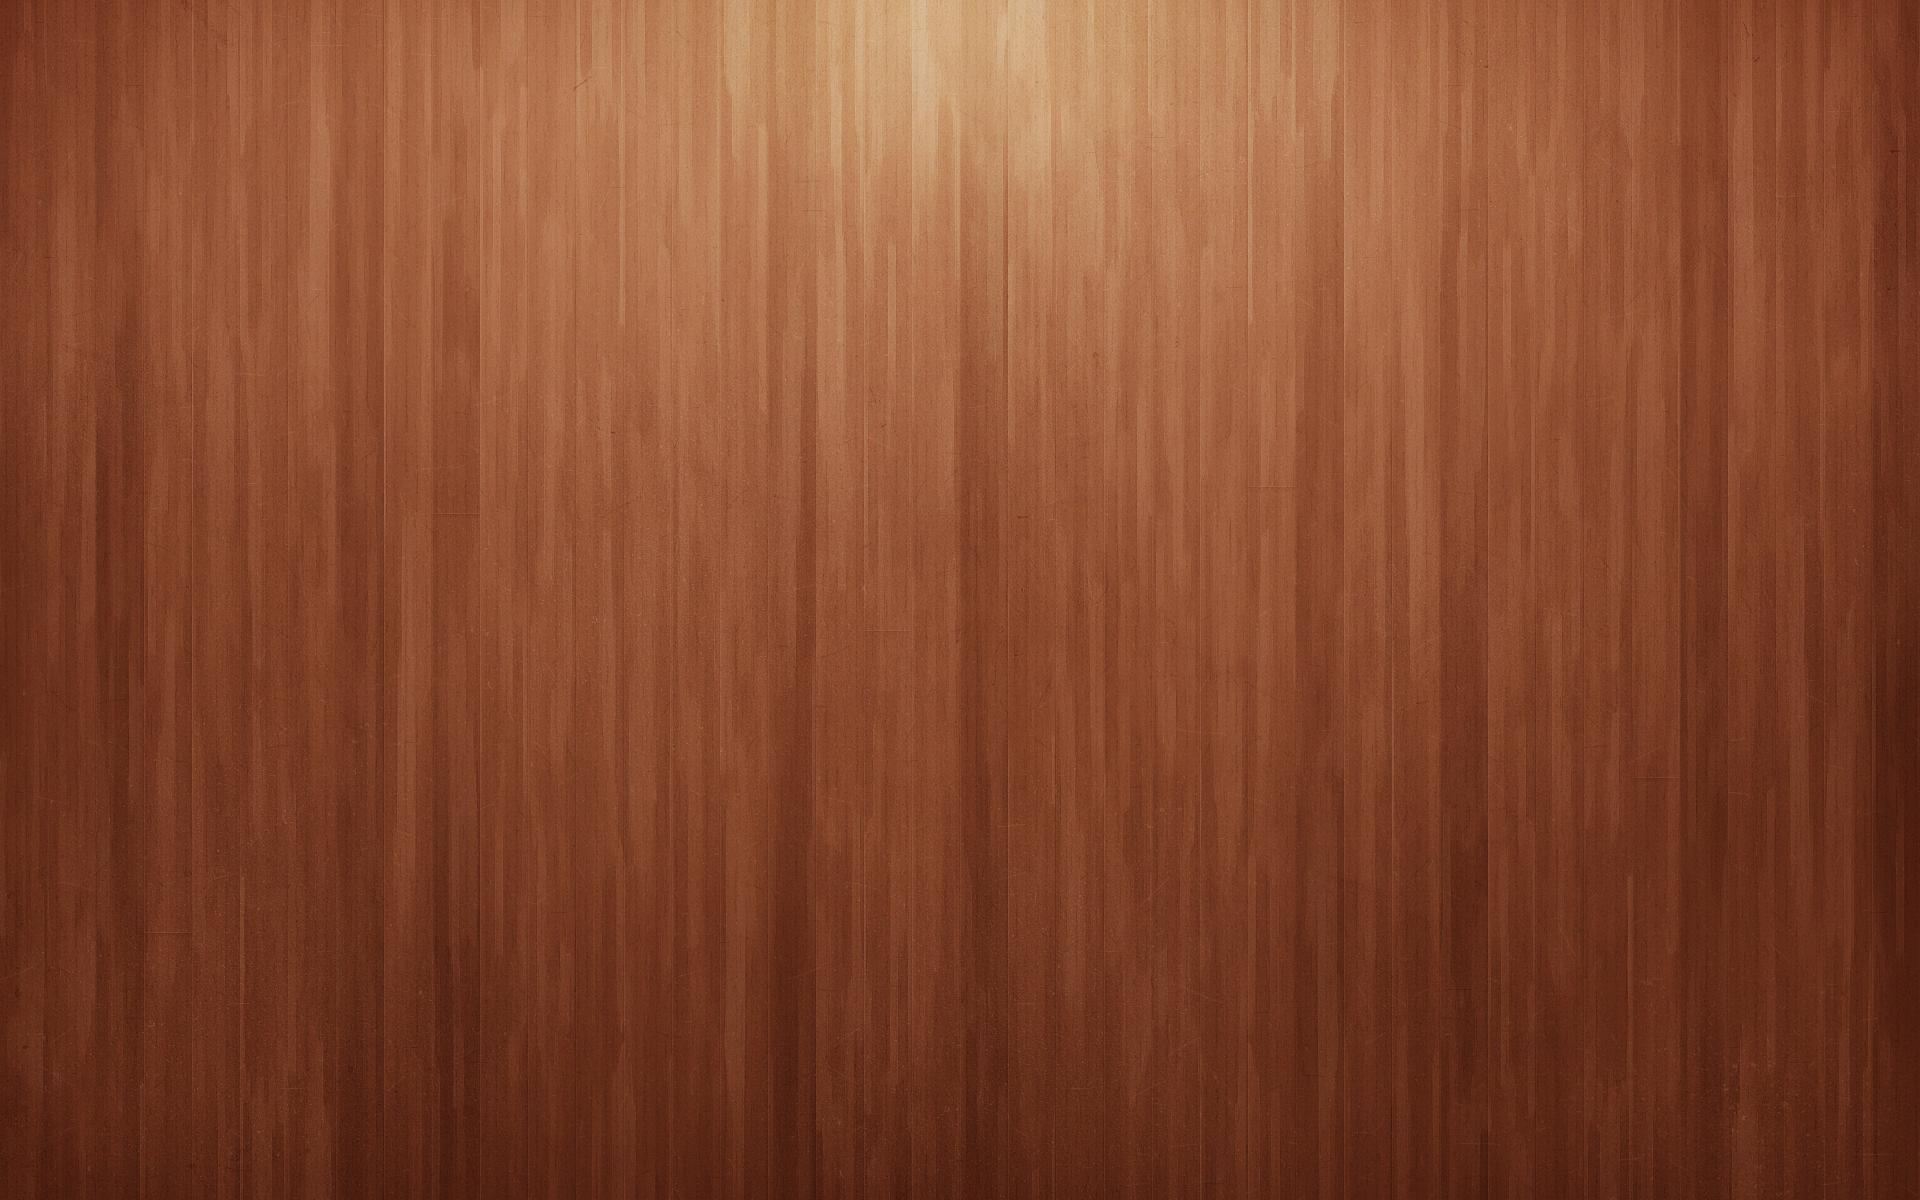 Wood Texture Wallpapers   Full HD wallpaper search 1920x1200